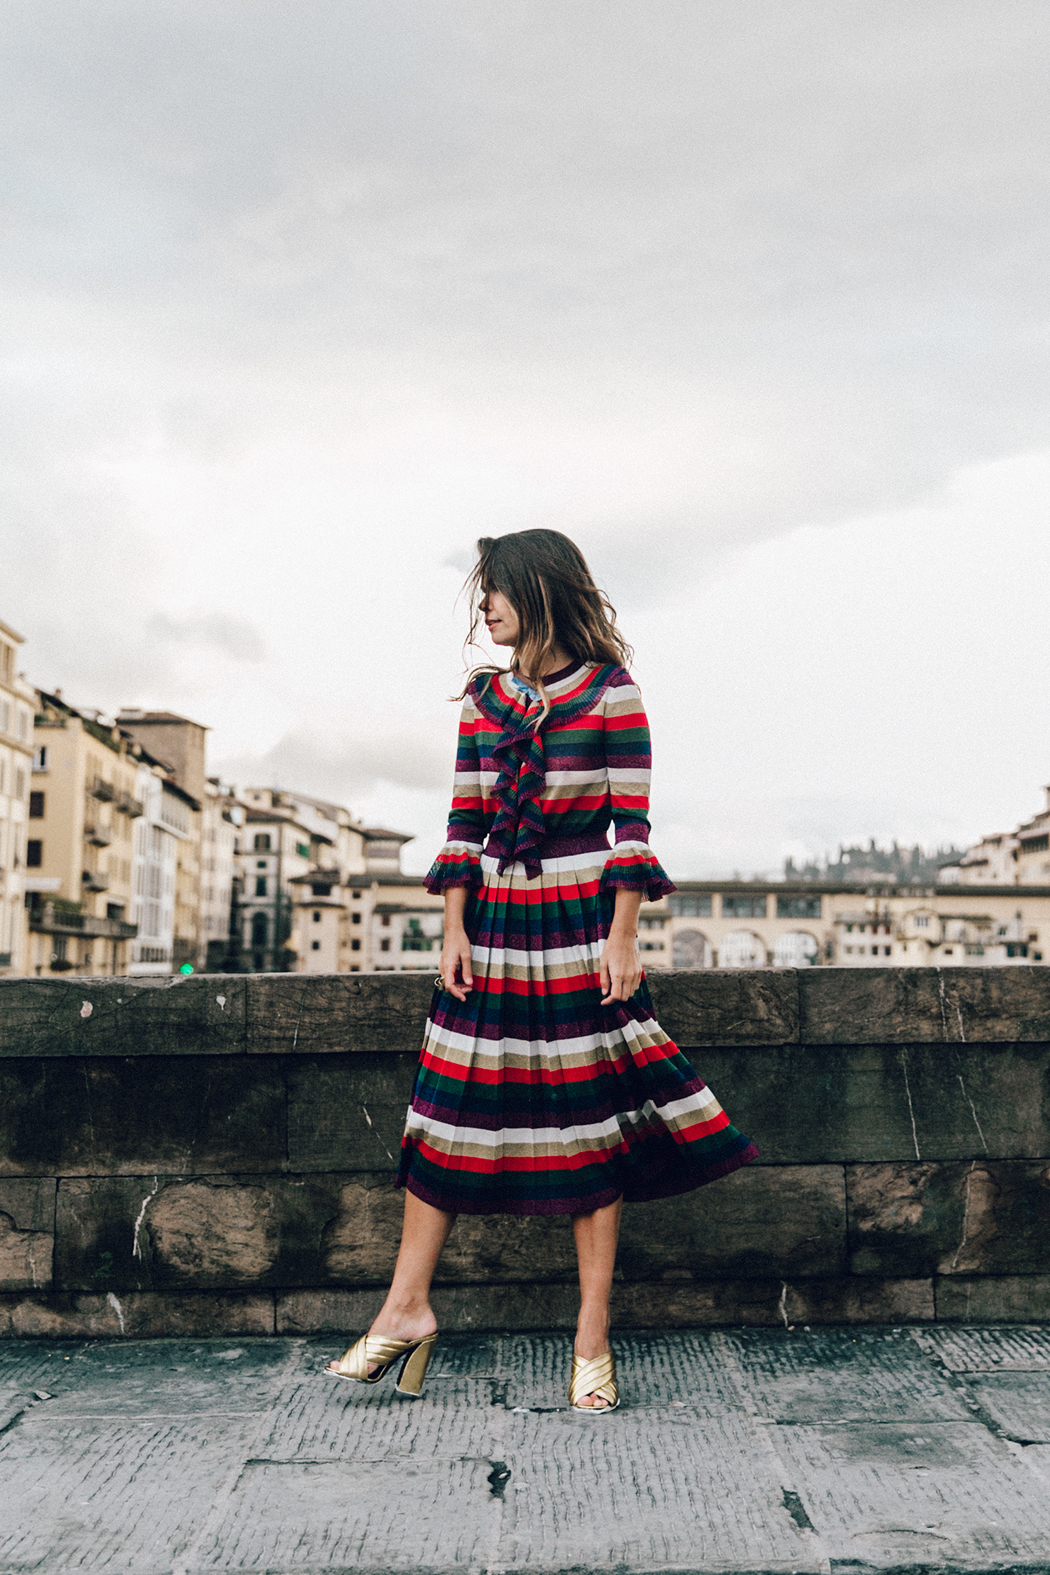 Firenze4Ever-Luisa_VIa_Roma-Gucci_Striped_Dress-Gucci_Gold_Sandals-Outfit-Florence-Street_Style-Firenze4Ever-Luisa_VIa_Roma-Gucci_Striped_Dress-Gucci_Gold_Sandals-Outfit-Florence-Street_Style-27